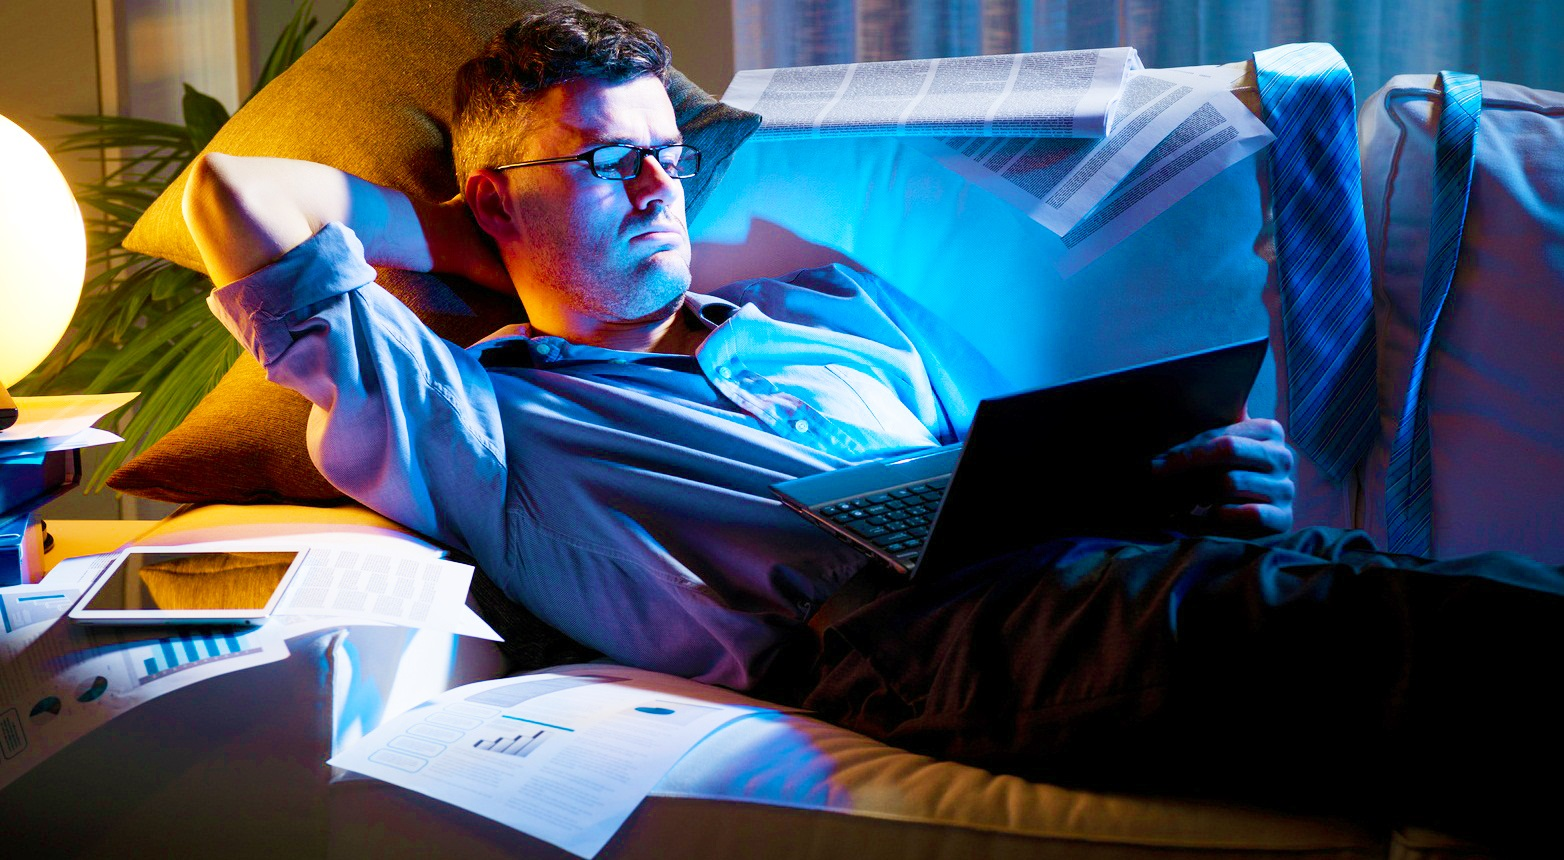 Businessman lying down on sofa and working with laptop late at night.